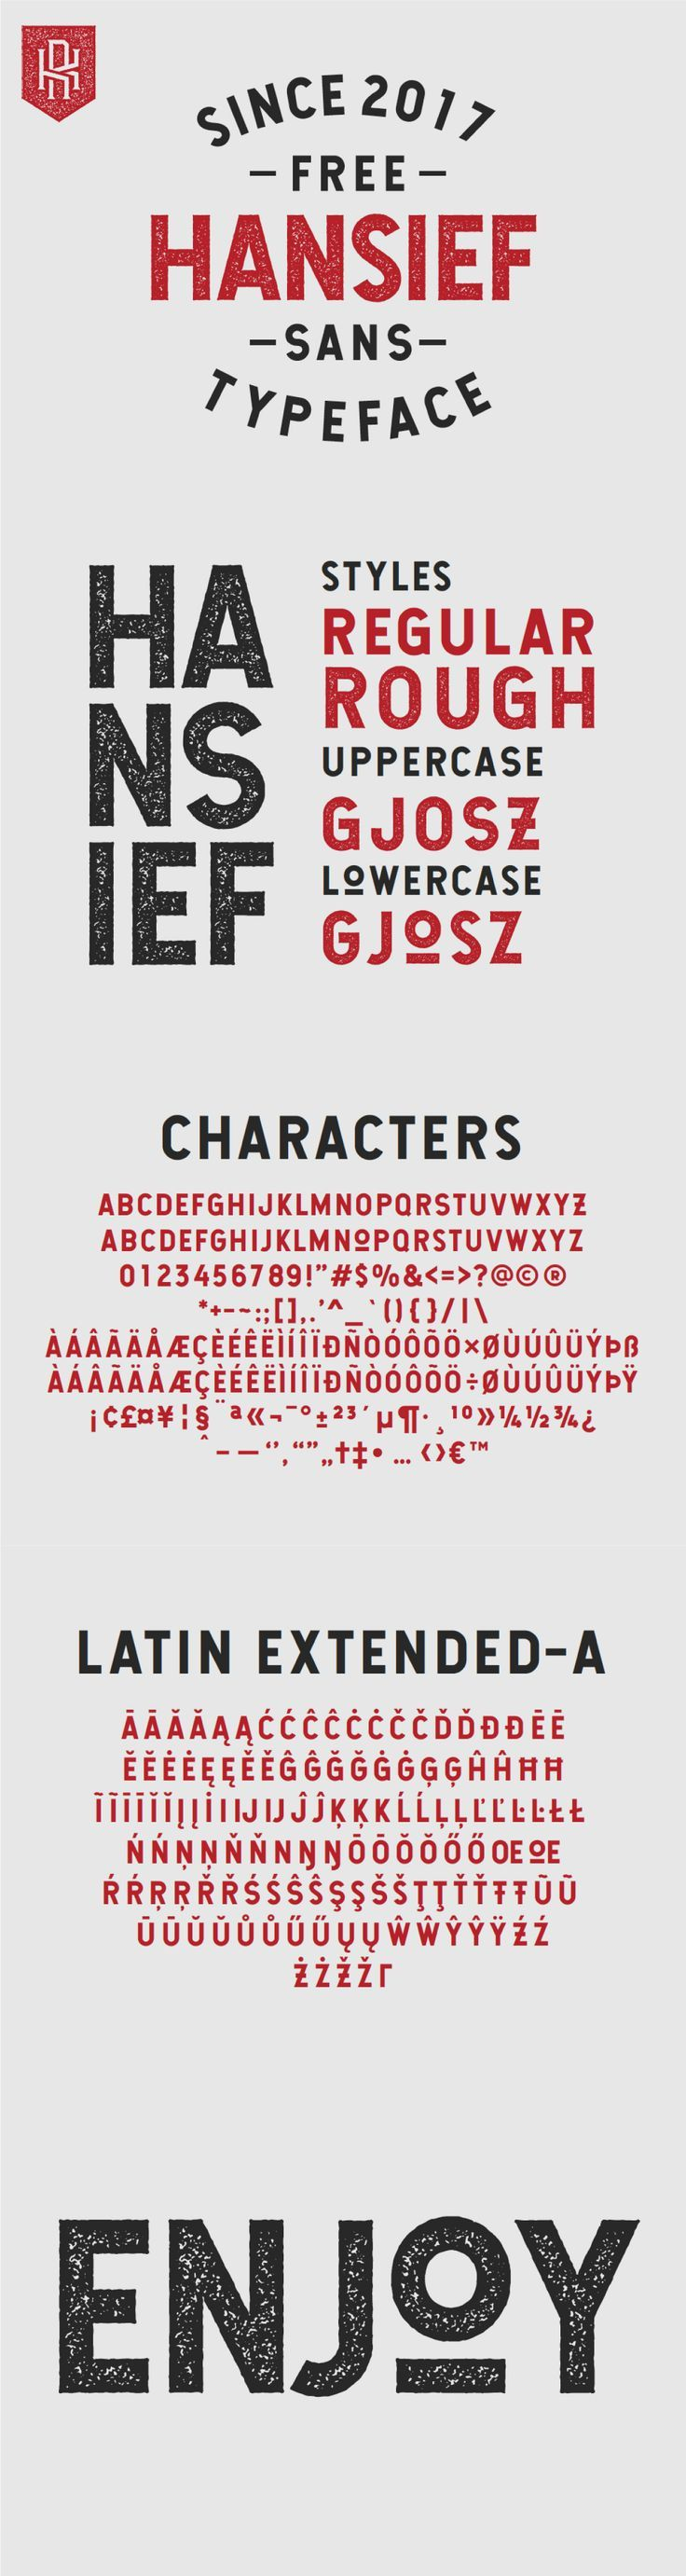 Hansief is a bold sans serif typeface from Kautsar Rahadi. It features a distinct vintage inspired style and comes with 2 styles - Regular and Rough. This typeface features great textures and is filled with unique characters. There are also extended latin characters for even broader use. Free for personal & commercial use